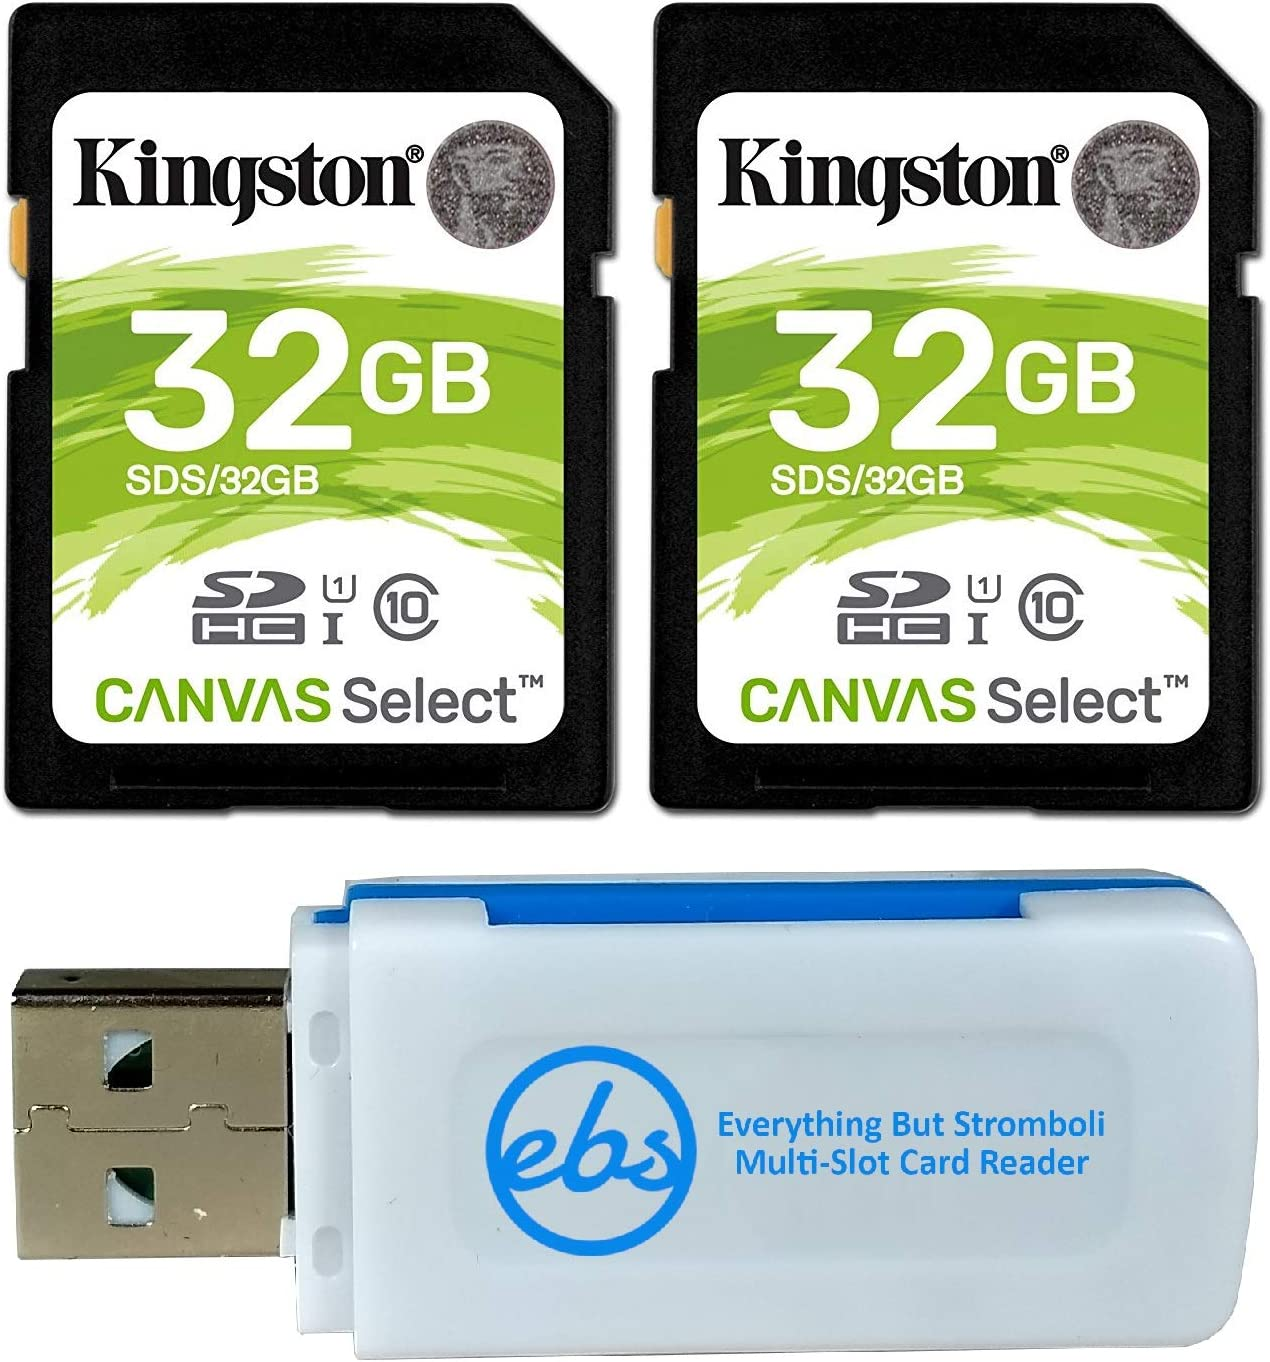 100MBs Works with Kingston Kingston 32GB Canon PowerShot SX230 HS Black MicroSDHC Canvas Select Plus Card Verified by SanFlash.